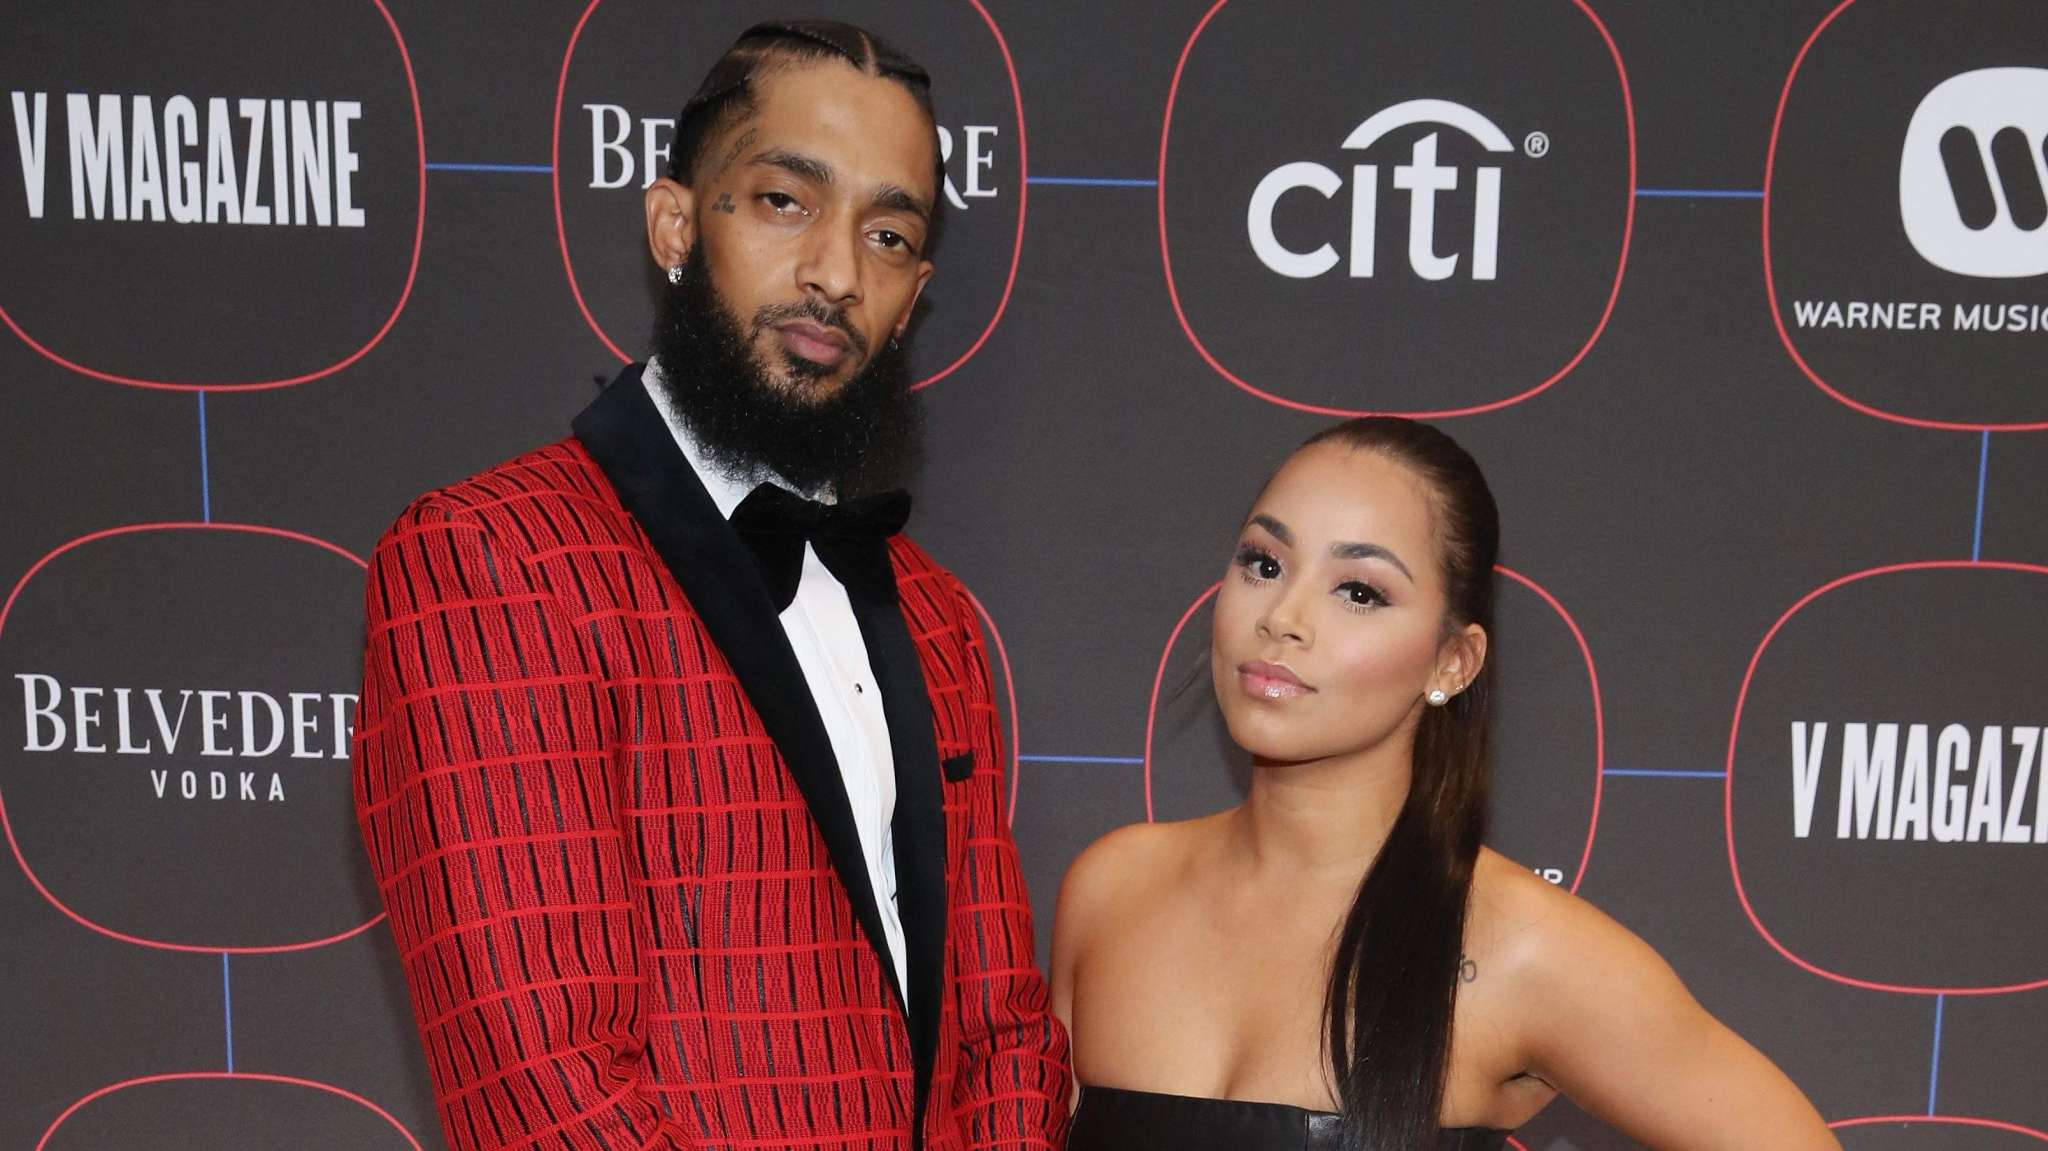 Here's The Last Heartbreaking Video That Fans Have Of Nipsey Hussle And Lauren London Together - People Are Worried Sick About Her